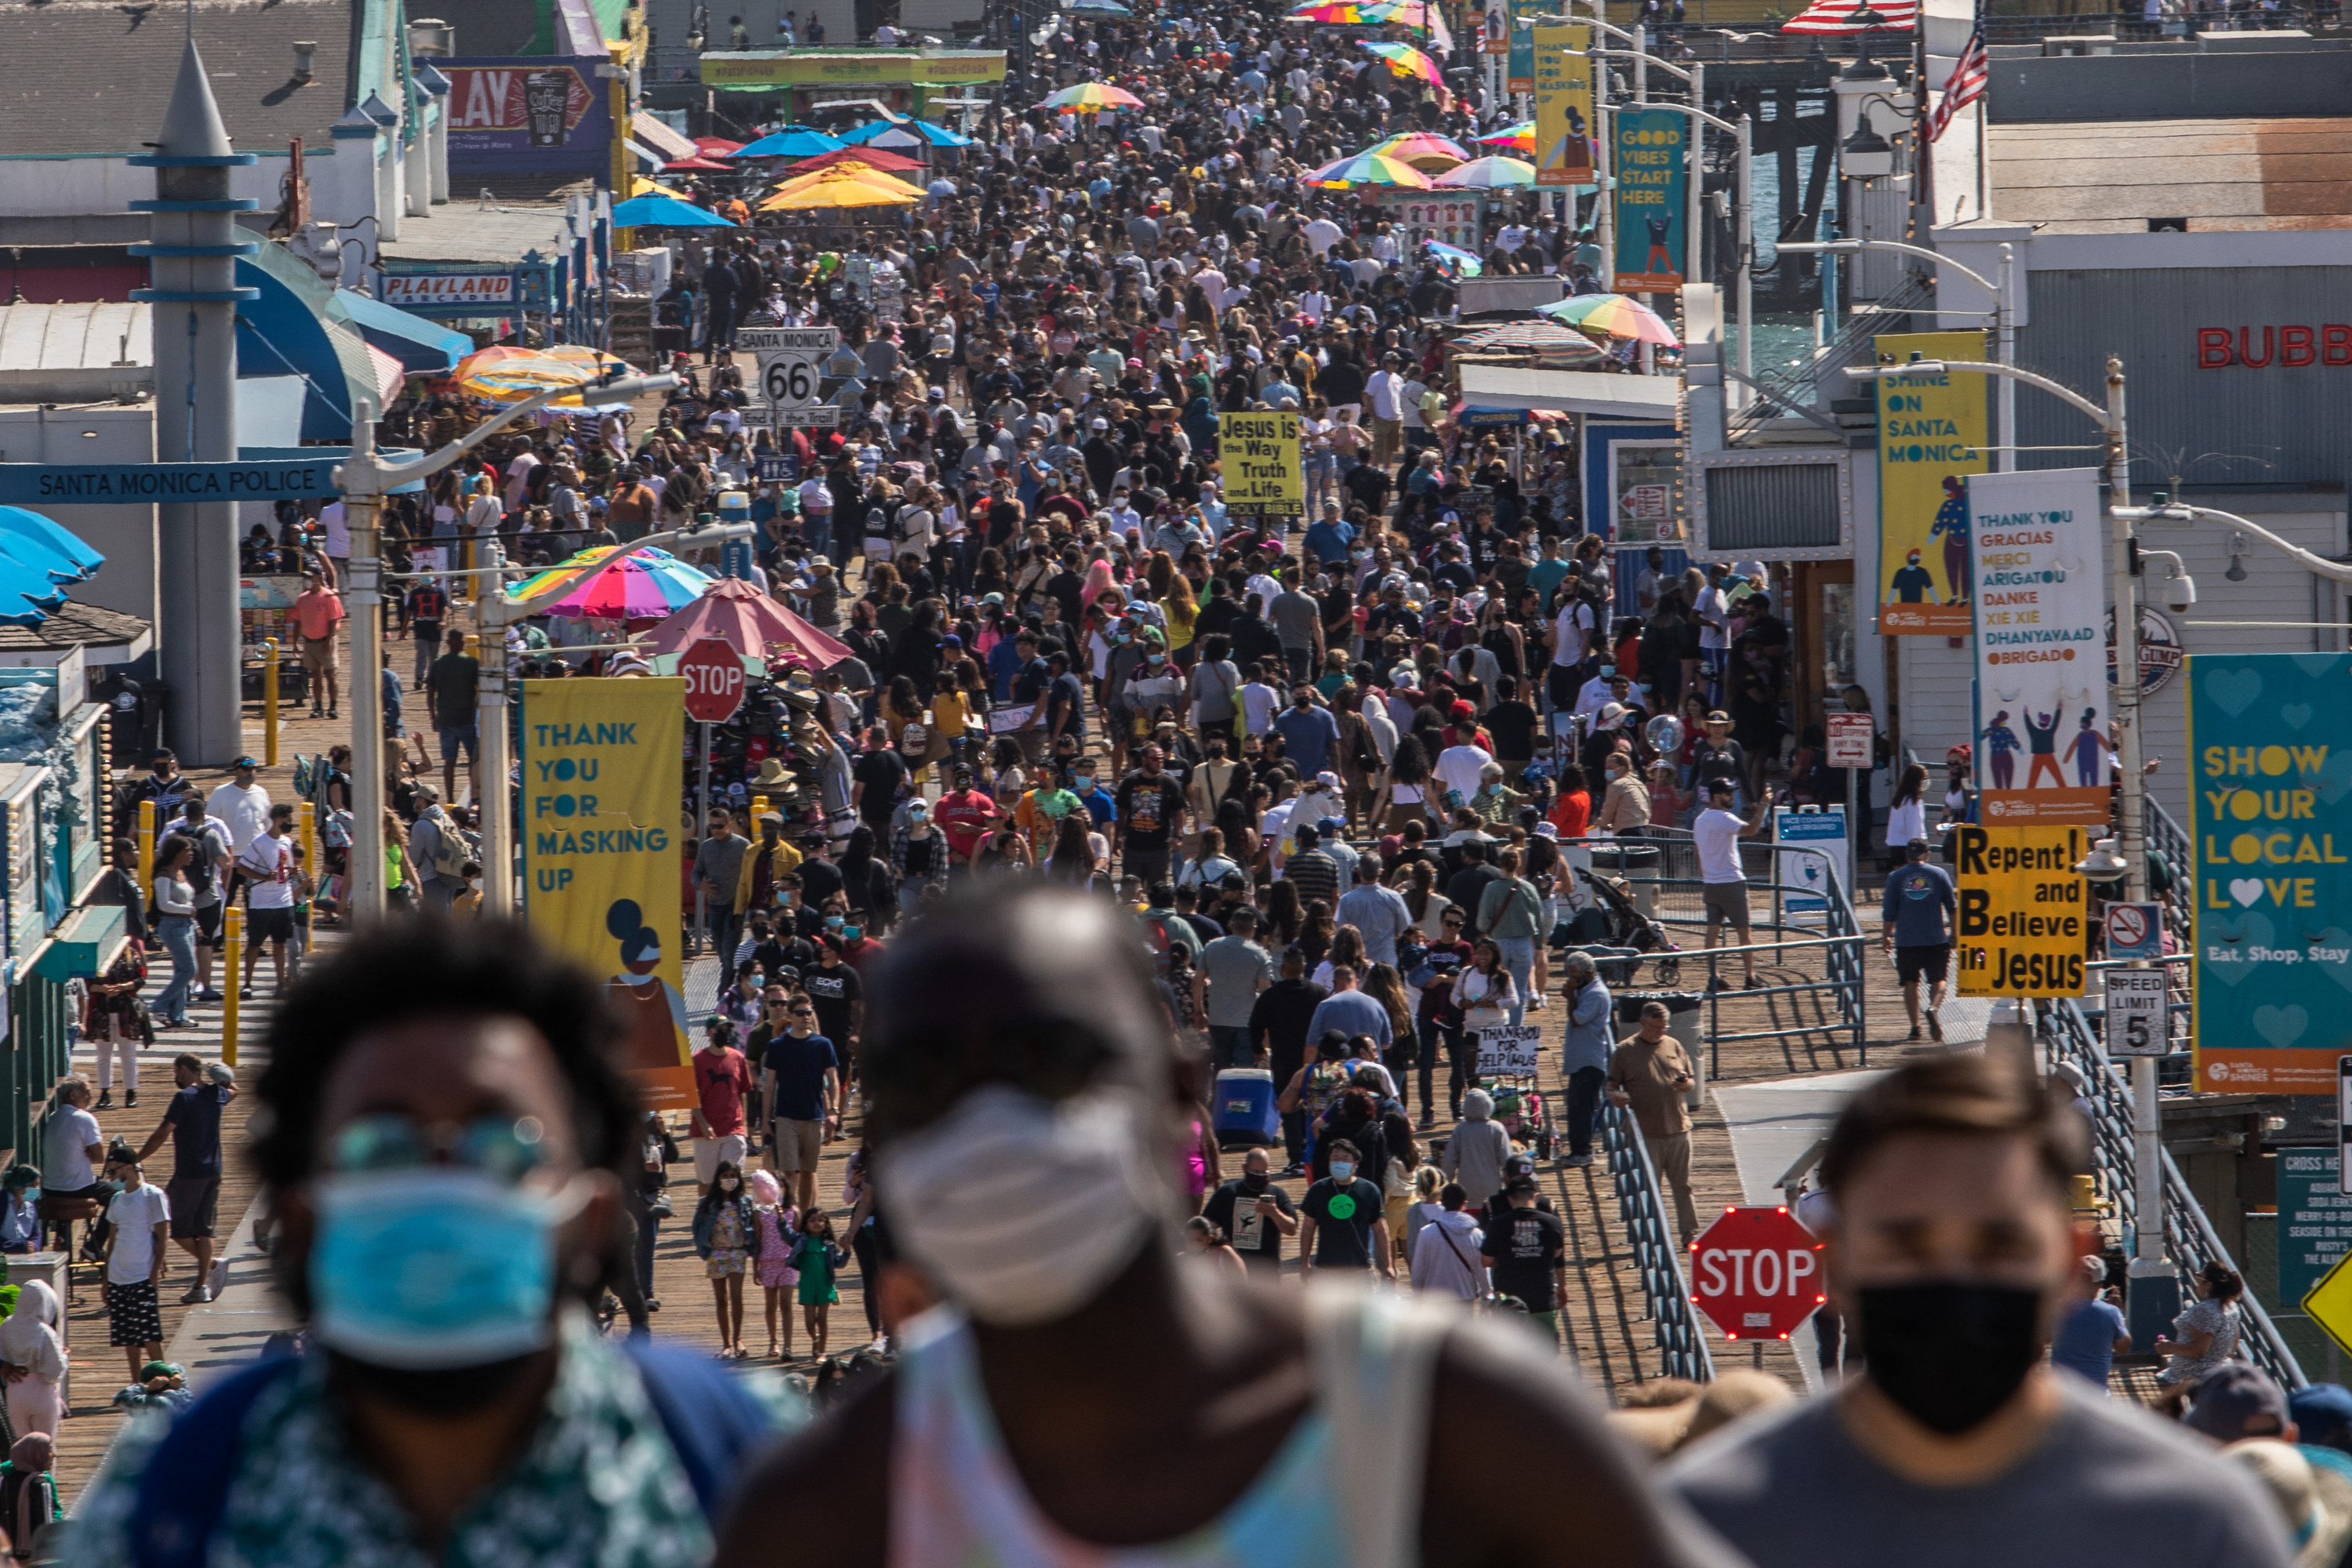 People walk through the Santa Monica pier ahead of Memorial Day in California on May 29, 2021